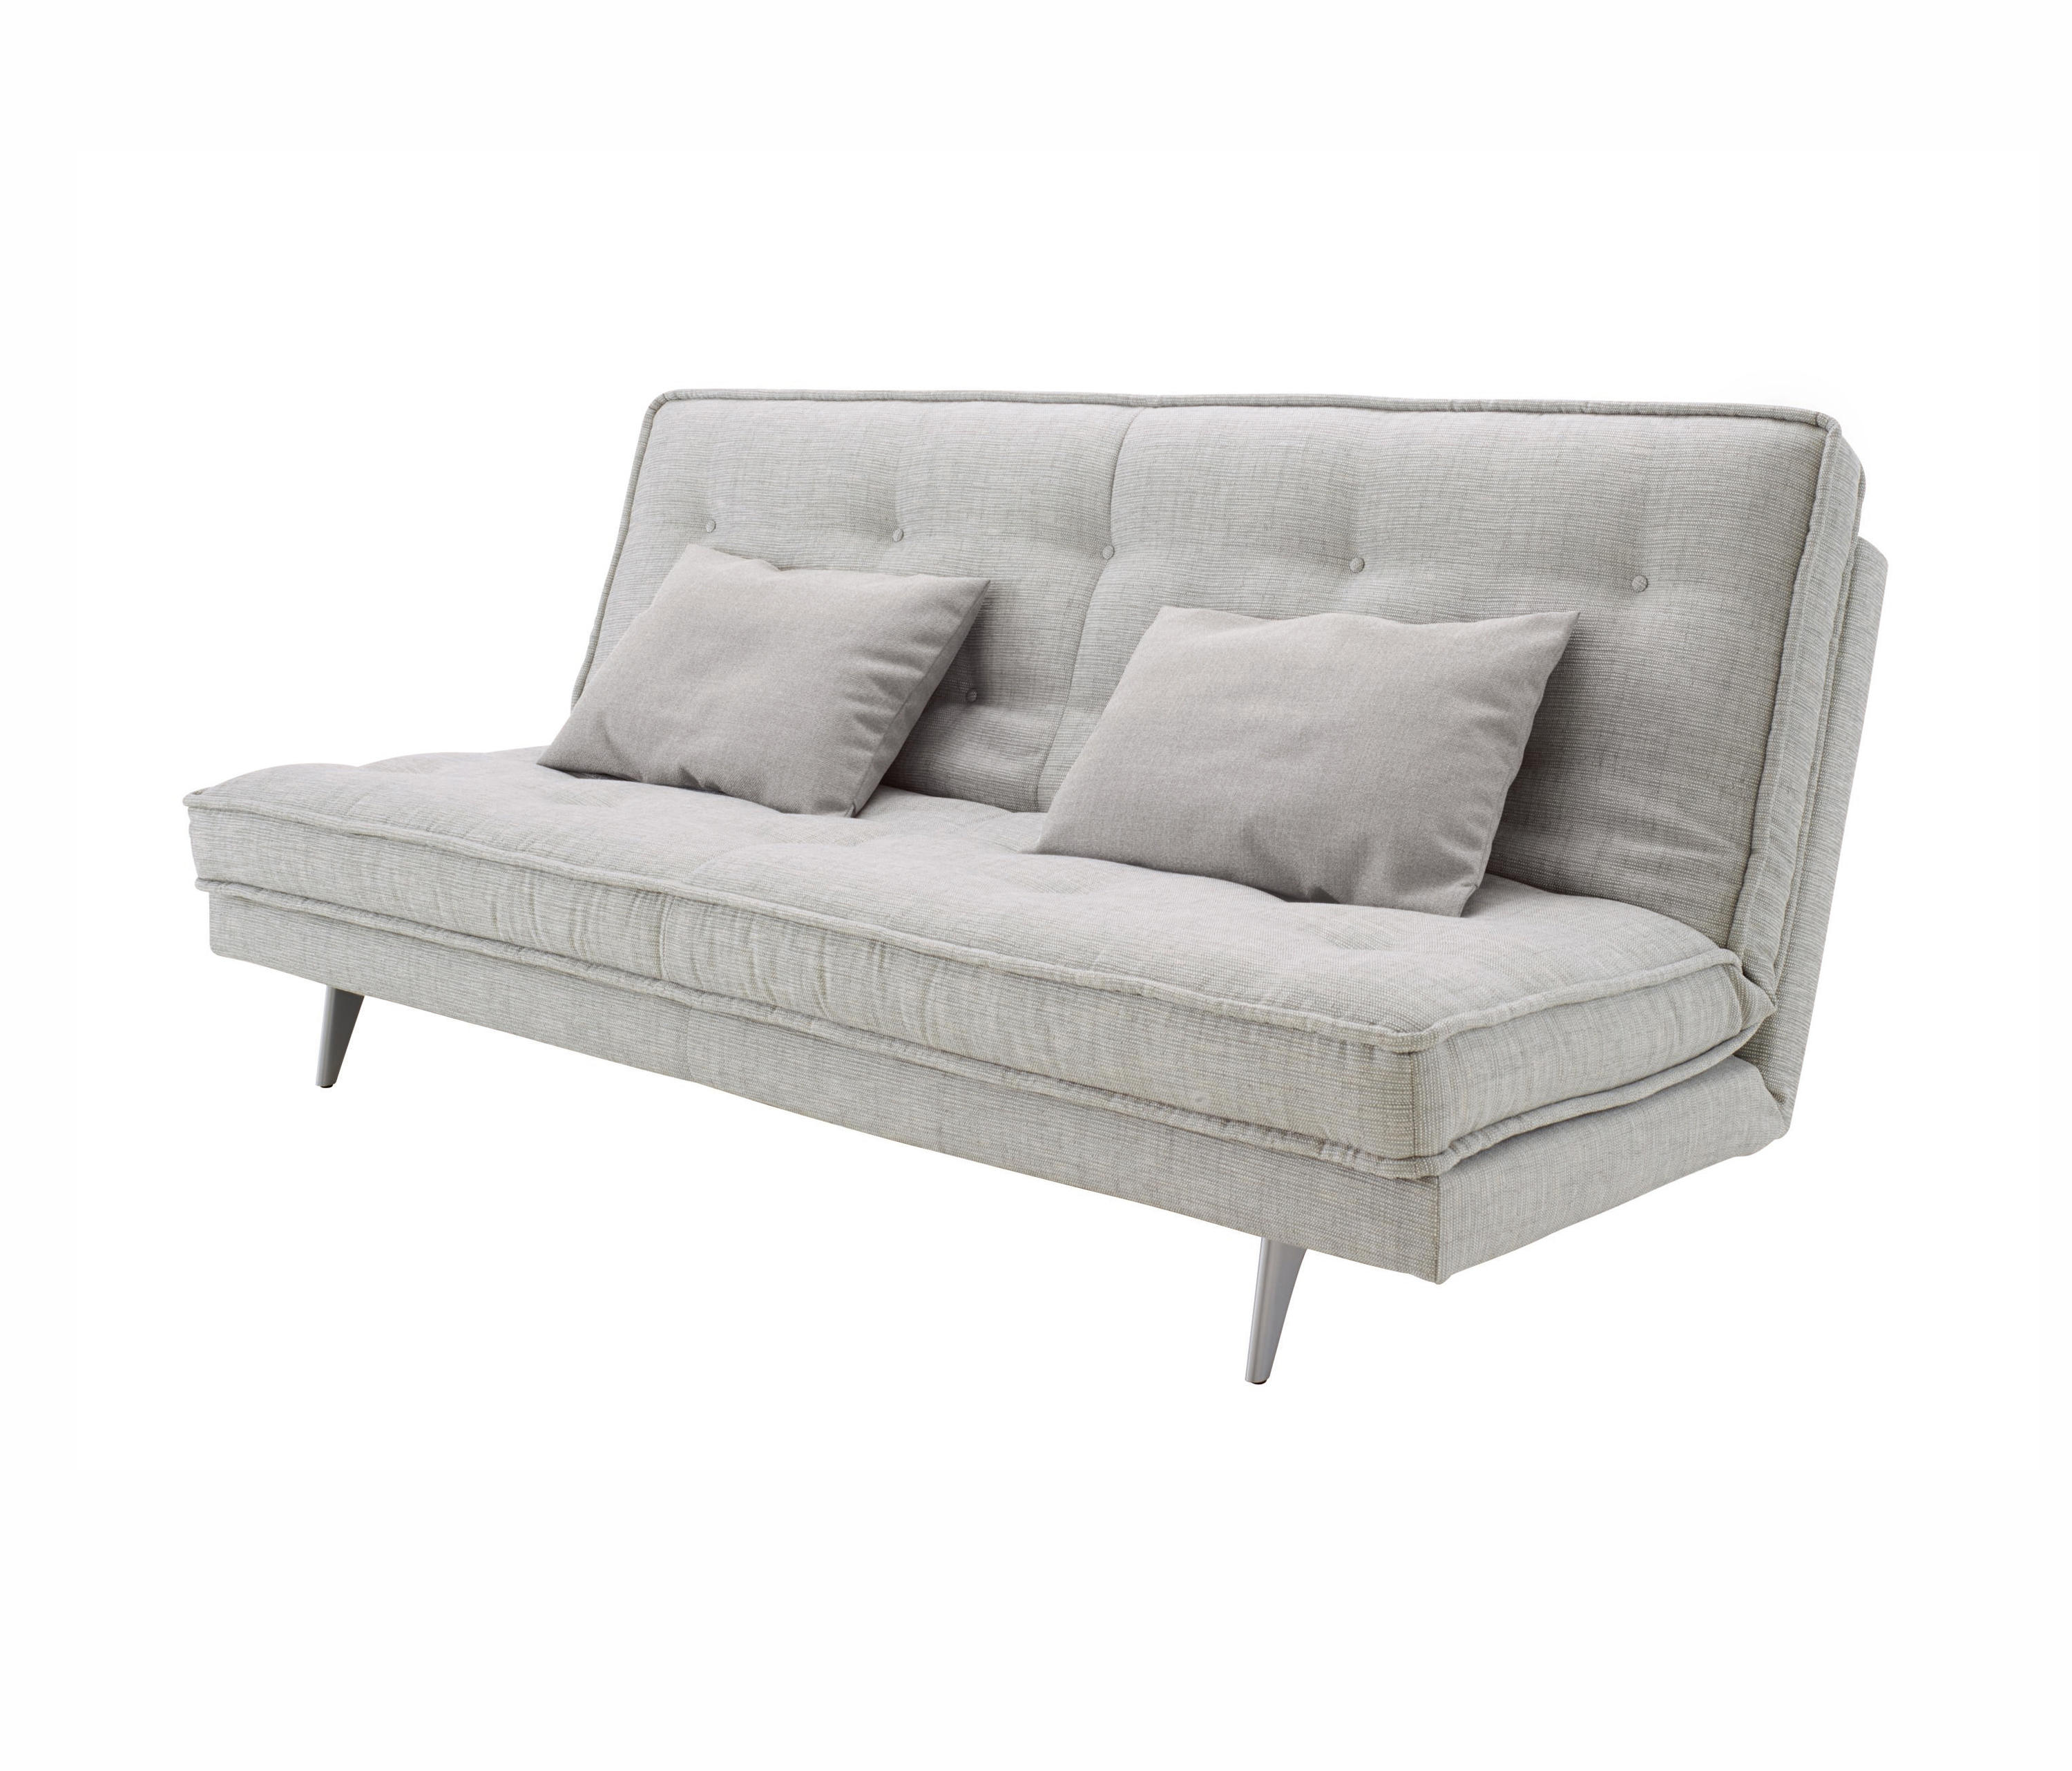 nomade express bed settee